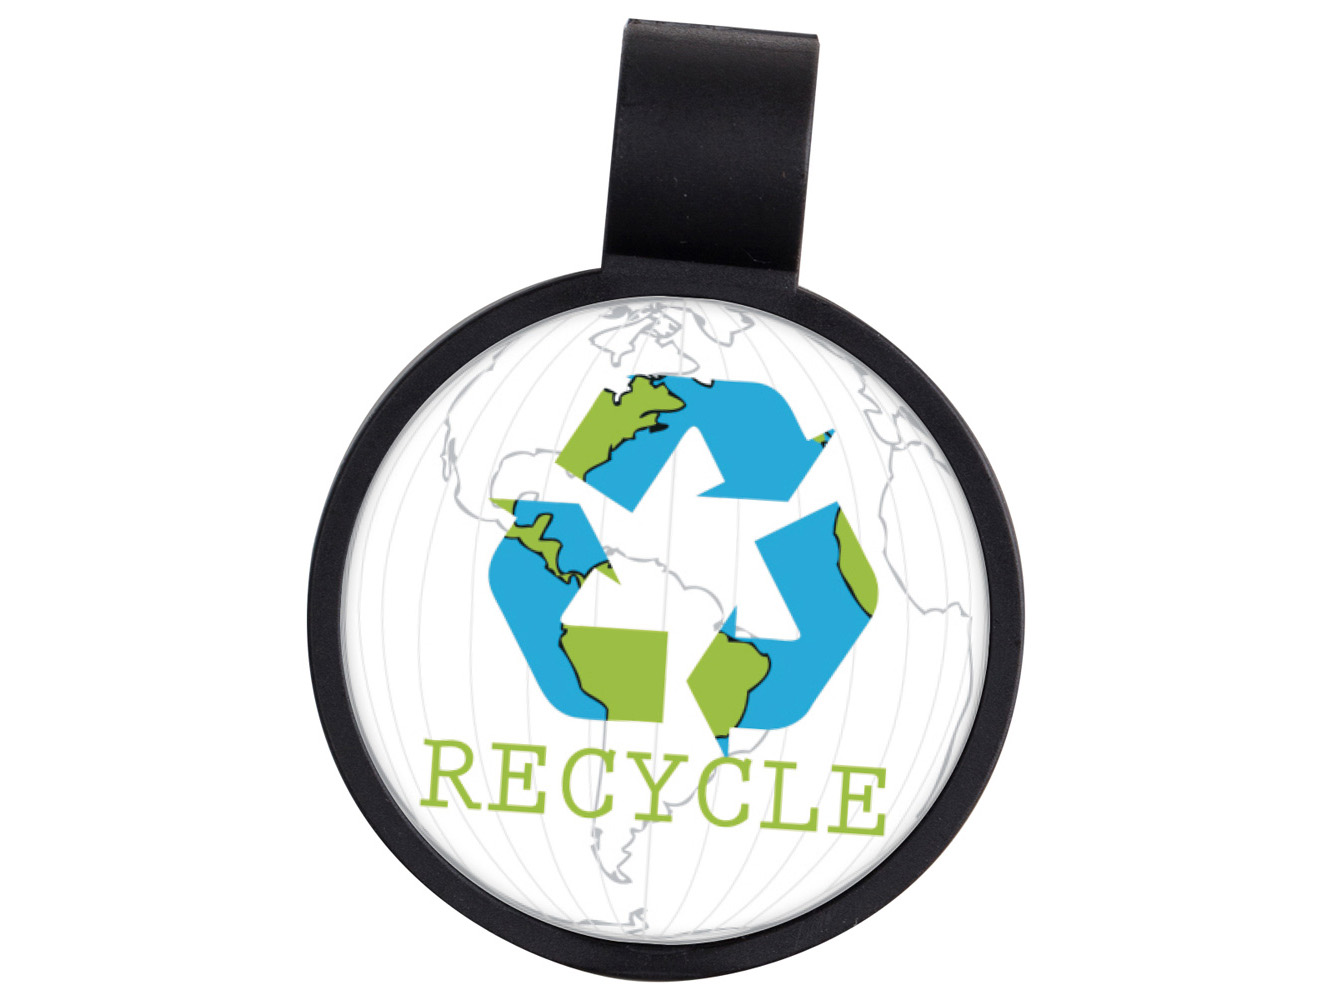 STF12: Recycle Anti-Microbial Stethoscope ID Tag